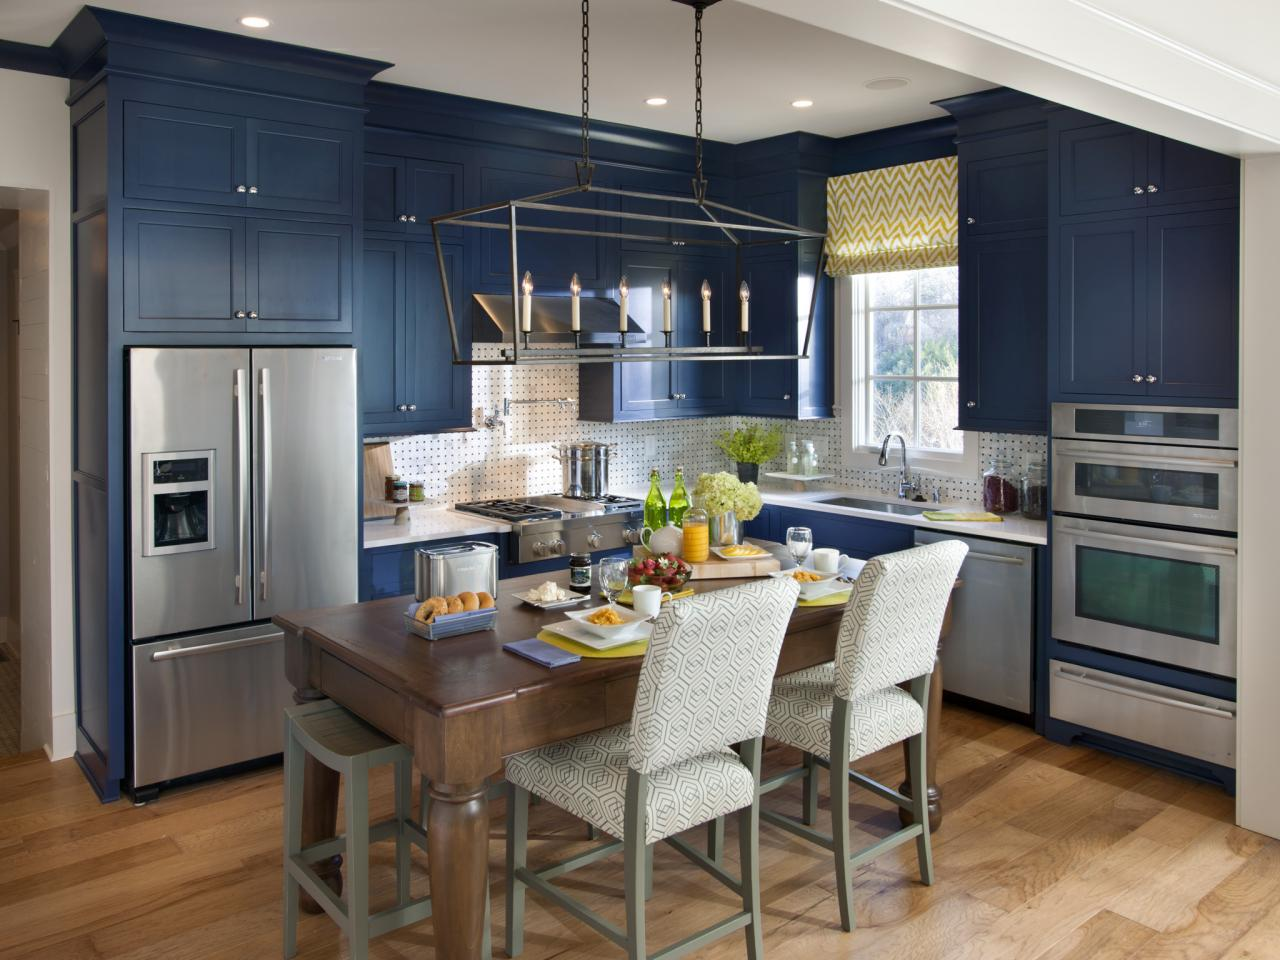 Kitchen from hgtv smart home 2014 hgtv smart home 2014 for Hgtv kitchens